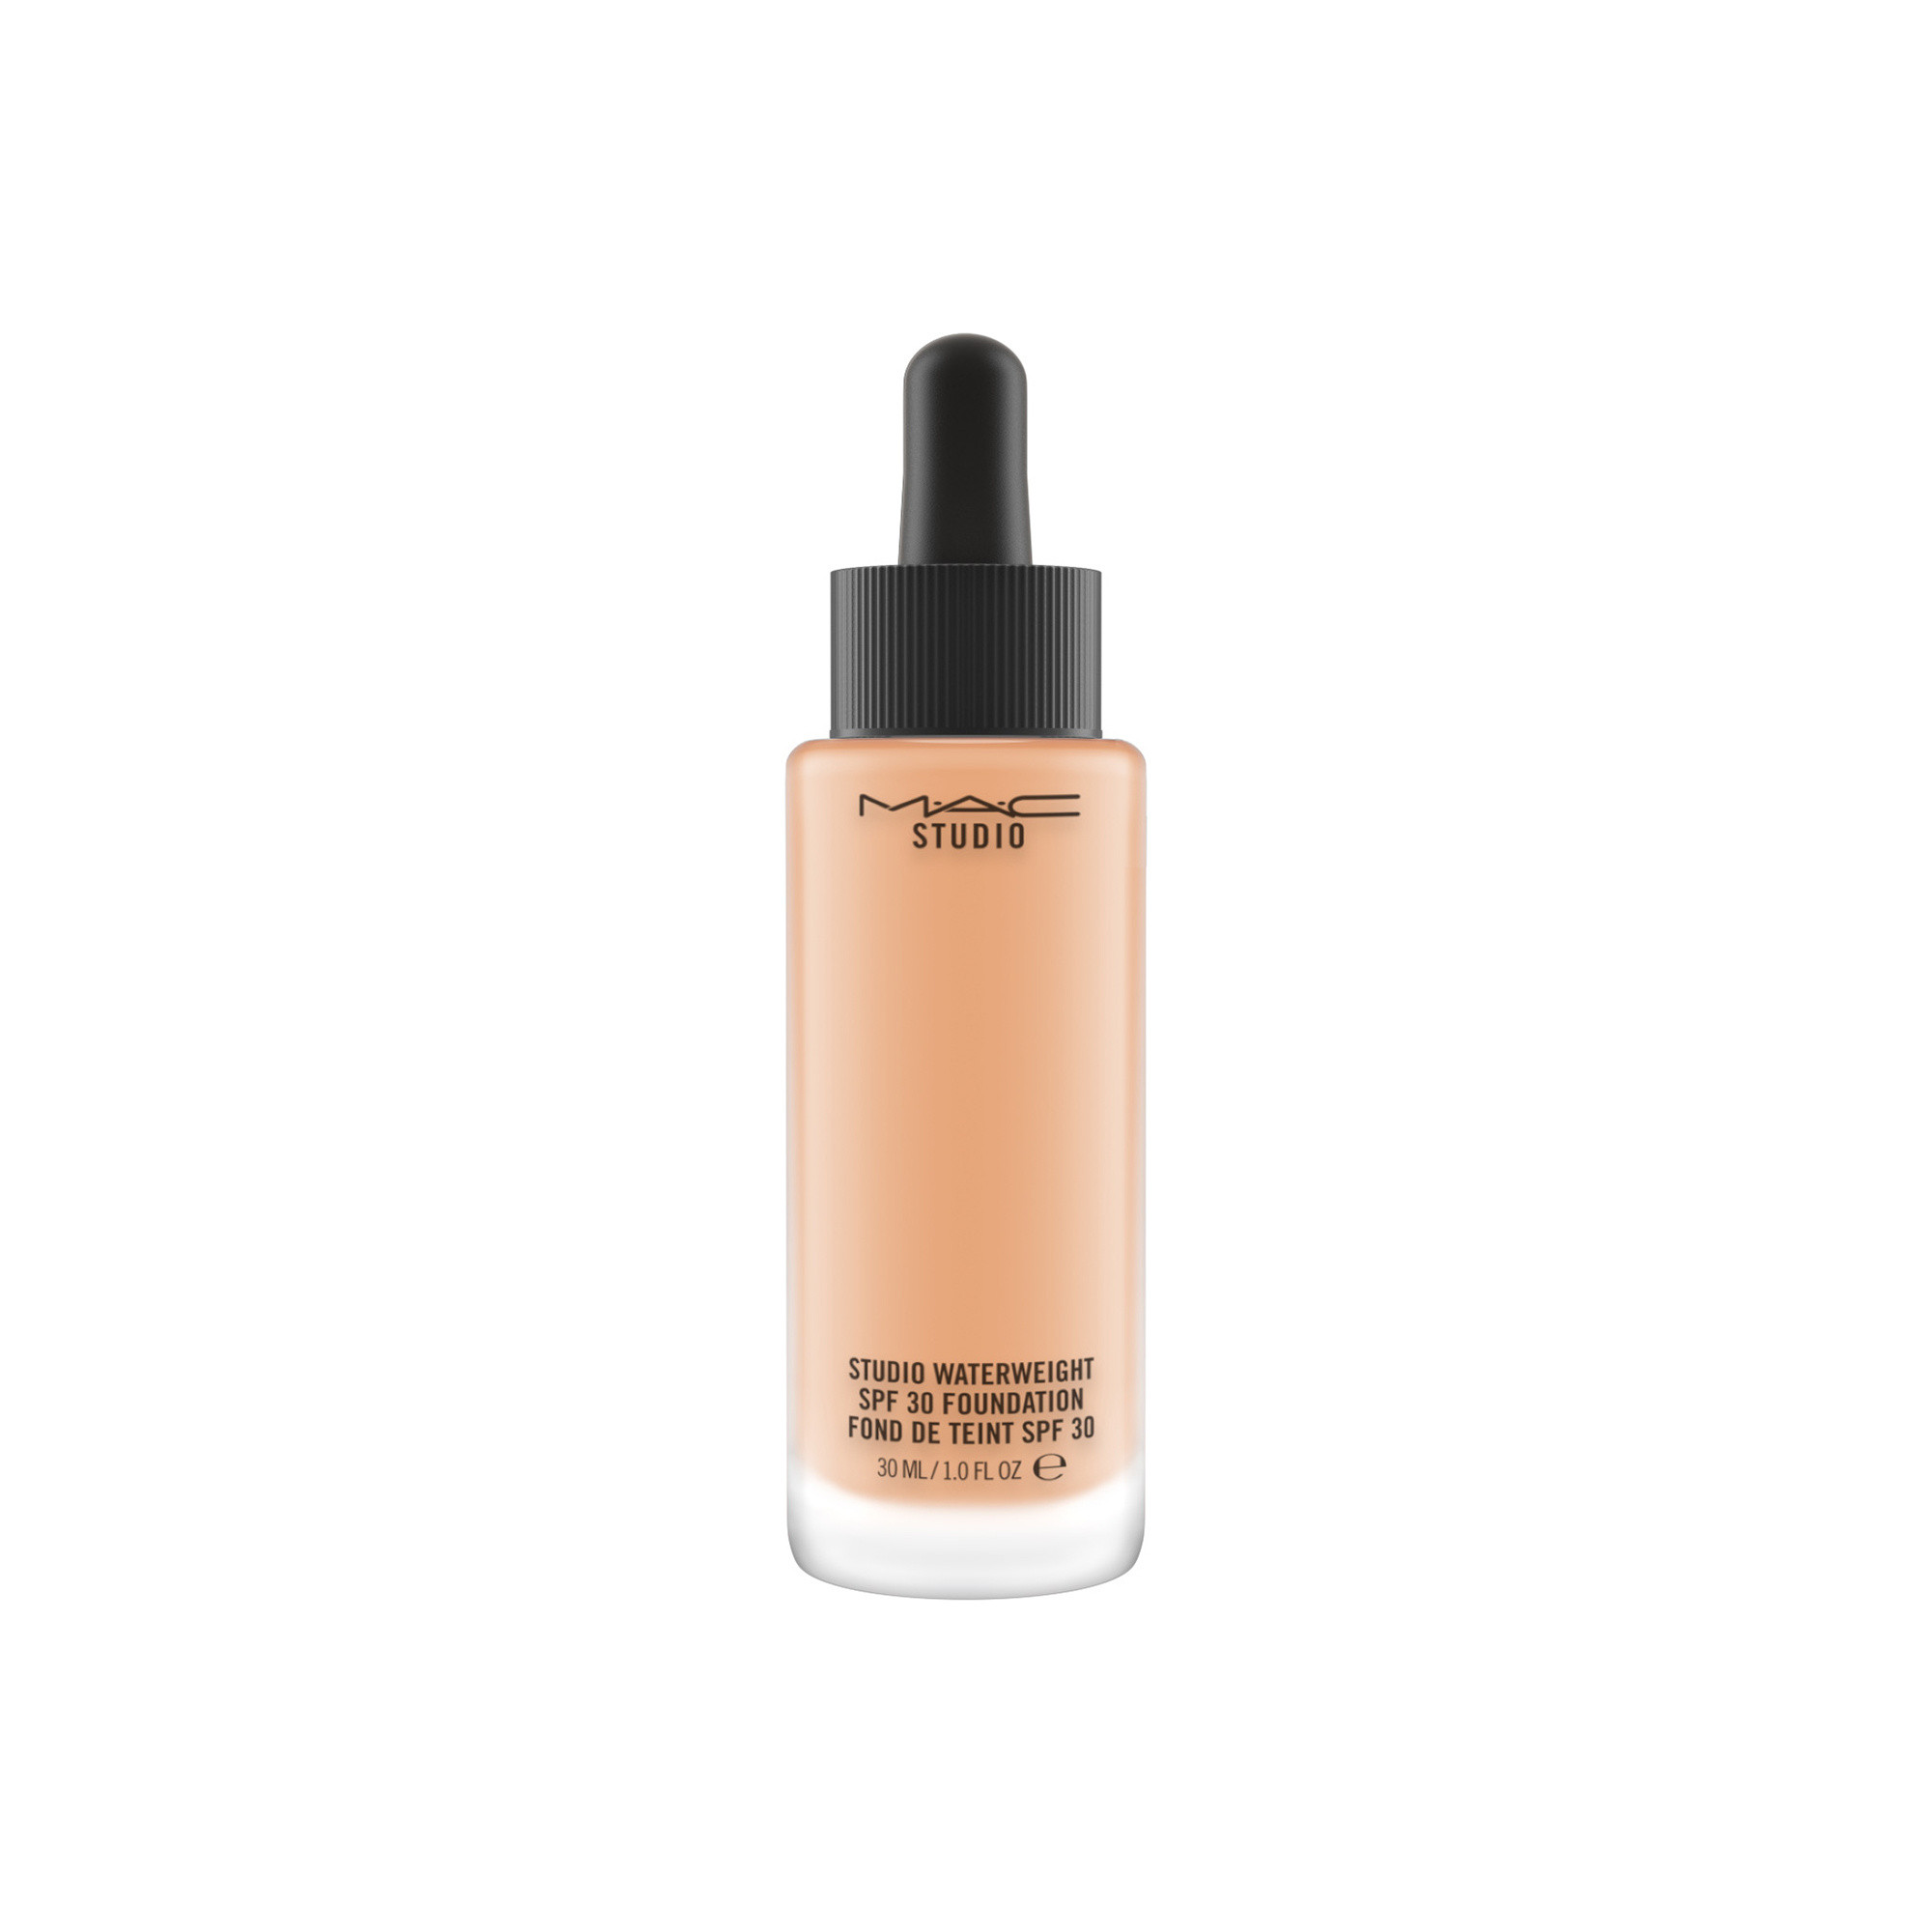 Studio Waterweight Foundation Spf30 - NC37, NC37, large image number 1